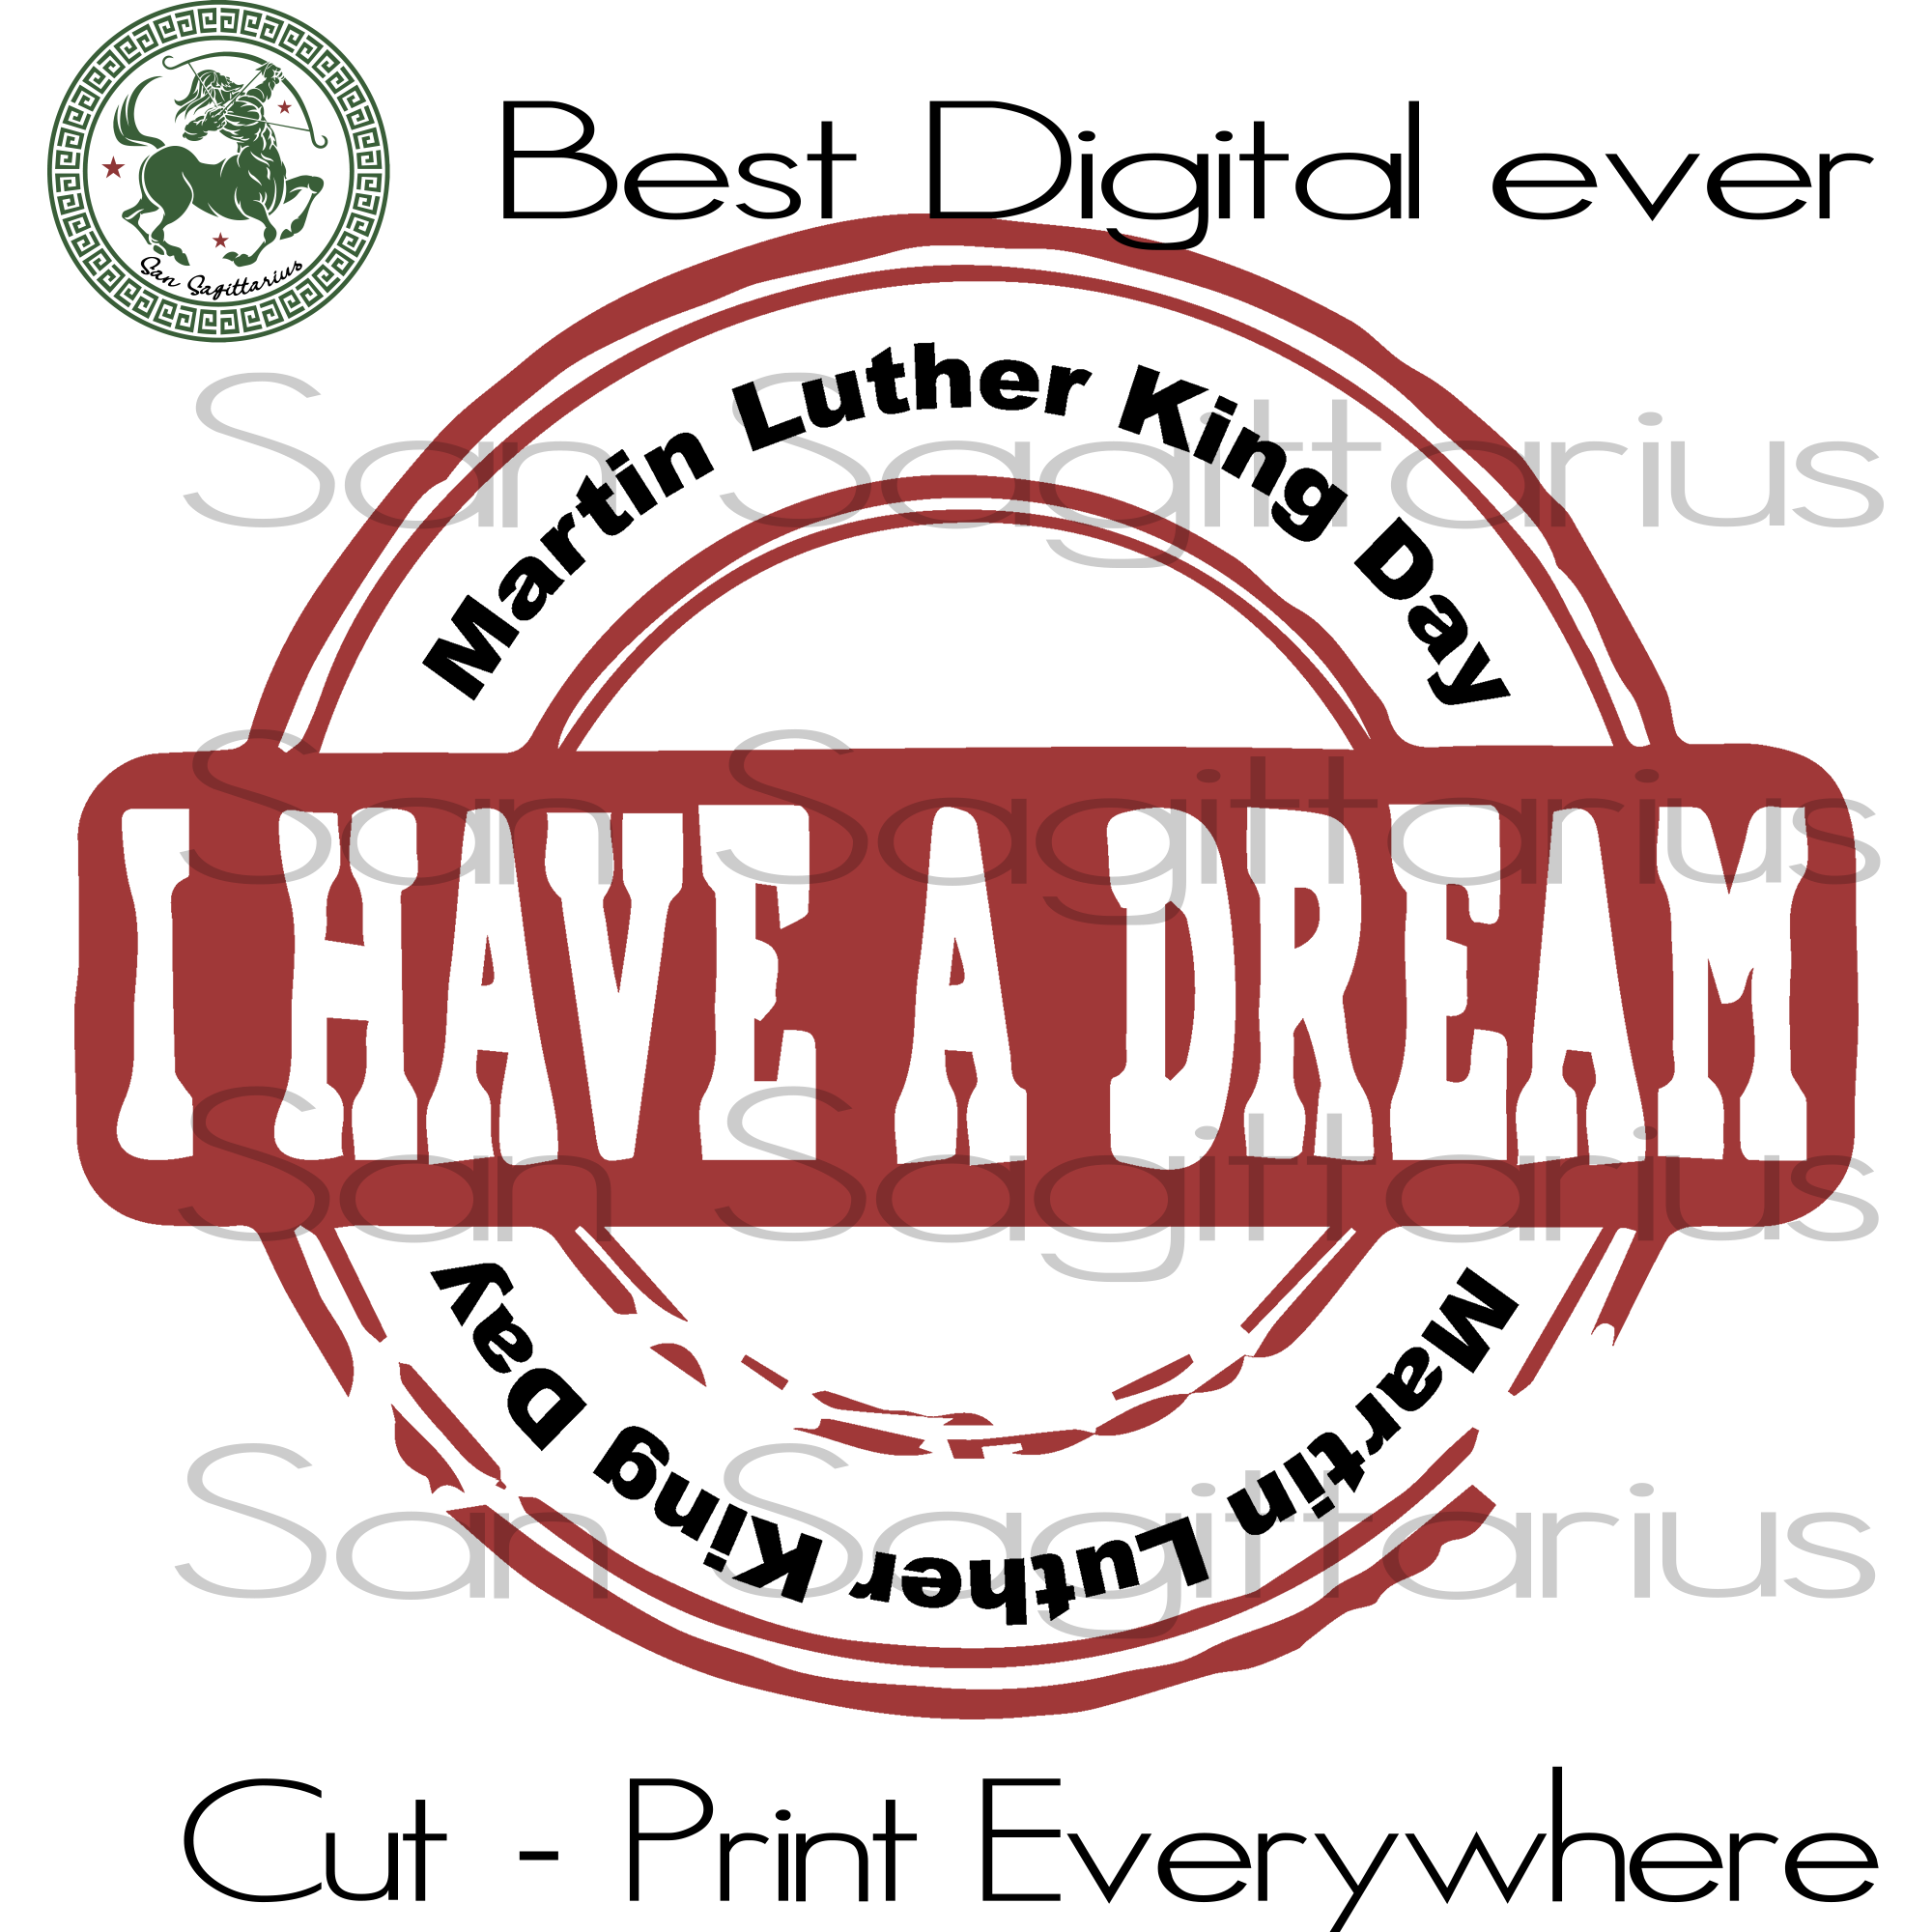 Martin Luther King Day, Martin Luther King  Stamp SVG, Martin Luther King Day, black lives matter, black history SVG, Martin Luther King SVG Files For Cricut Silhouette Instant Download | San